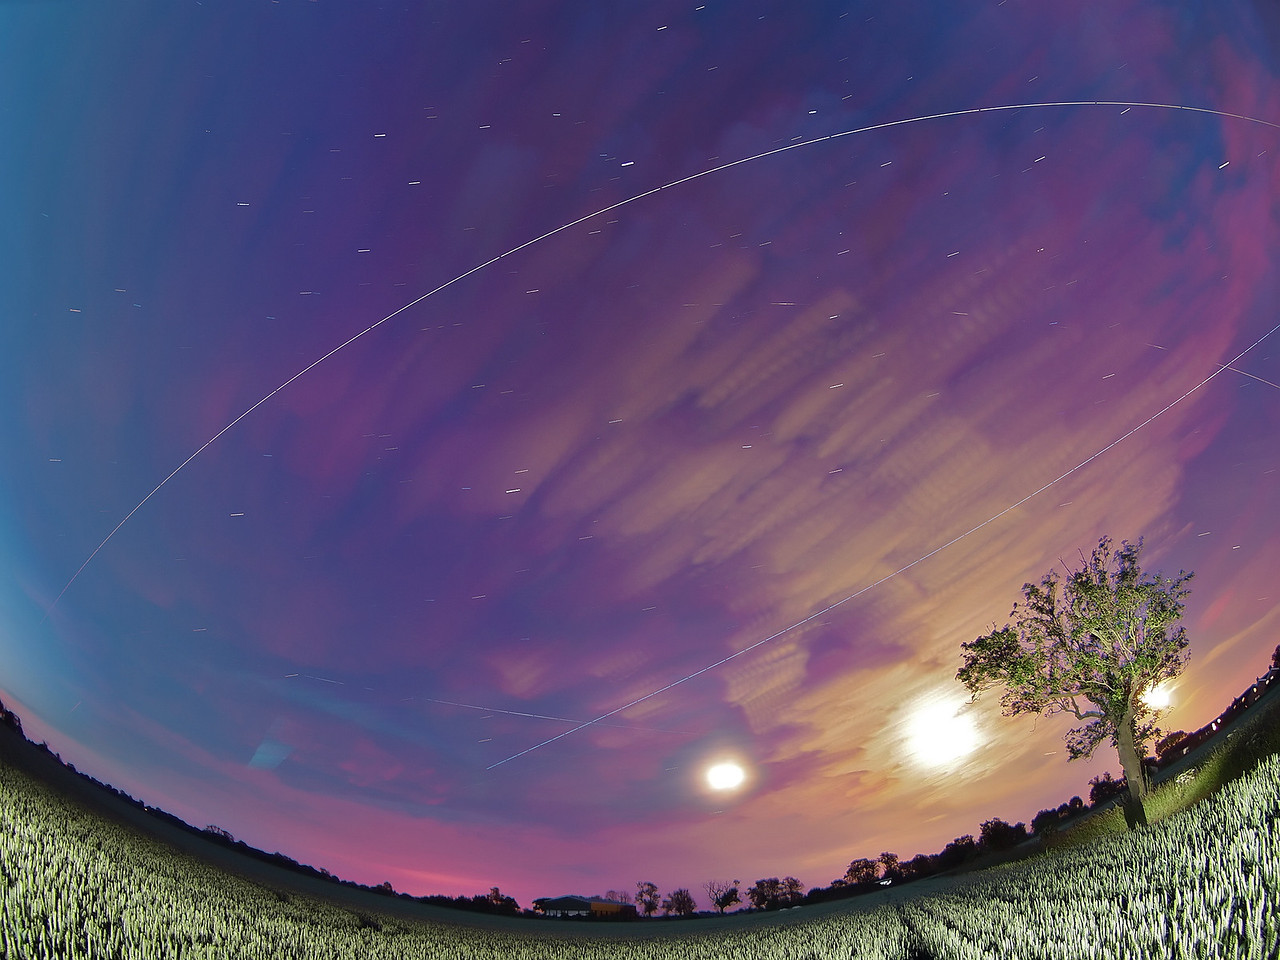 June 13/14 2011. Another amazing marathon night of multiple ISS flybys across UK skies. Once again the ISS flew over 4 times. What is amazing about this shot is that I have captured on camera all 4 passes. Not sure this has ever been done before! Flyby times 2243, 0018, 0153 & 0329 hrs. Some cloud cover rolling in prevented the almost perfect shot. Still beggars can't be choosers.  Why are we getting so many ISS passes in one day? Universe Today Captured with Oly E5 & 8mm fisheye.  Camera settings: 15s exposures shot continuous during flyby, ISO 500, F3.5. Foreground lit with a few flash bursts away from camera.